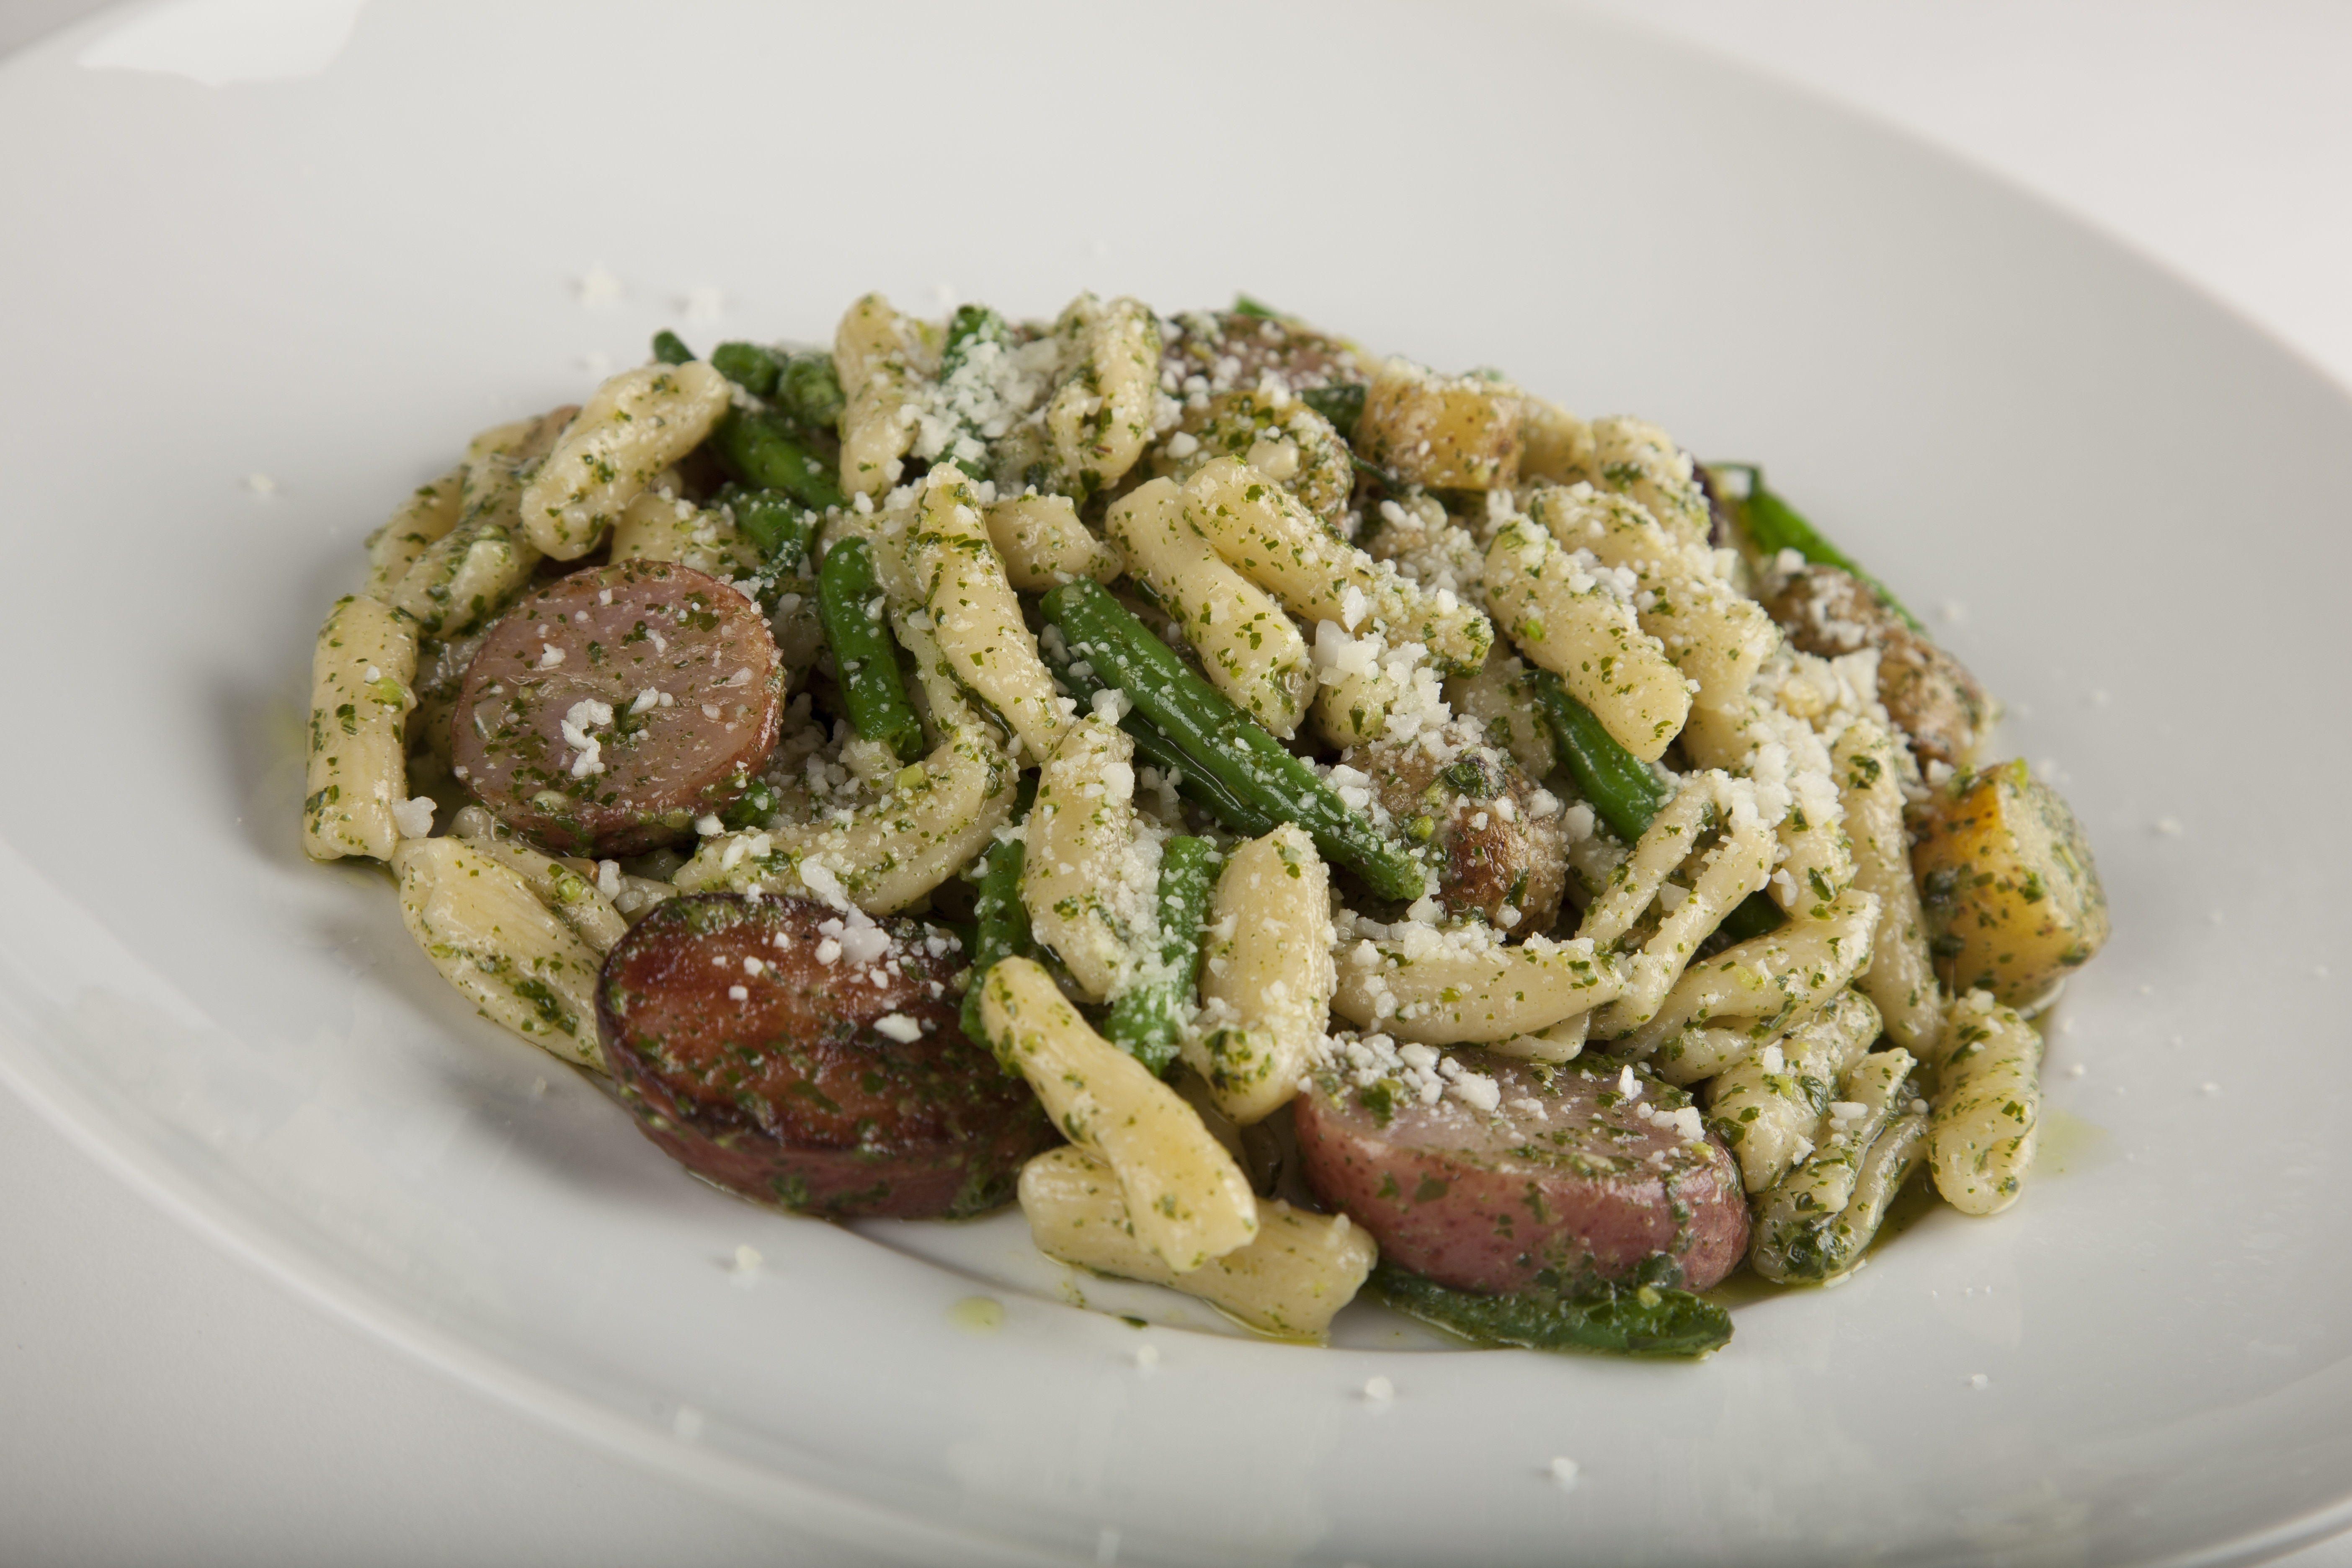 Cavatelli with Haricots Verts, Potatoes, and Basil Pesto